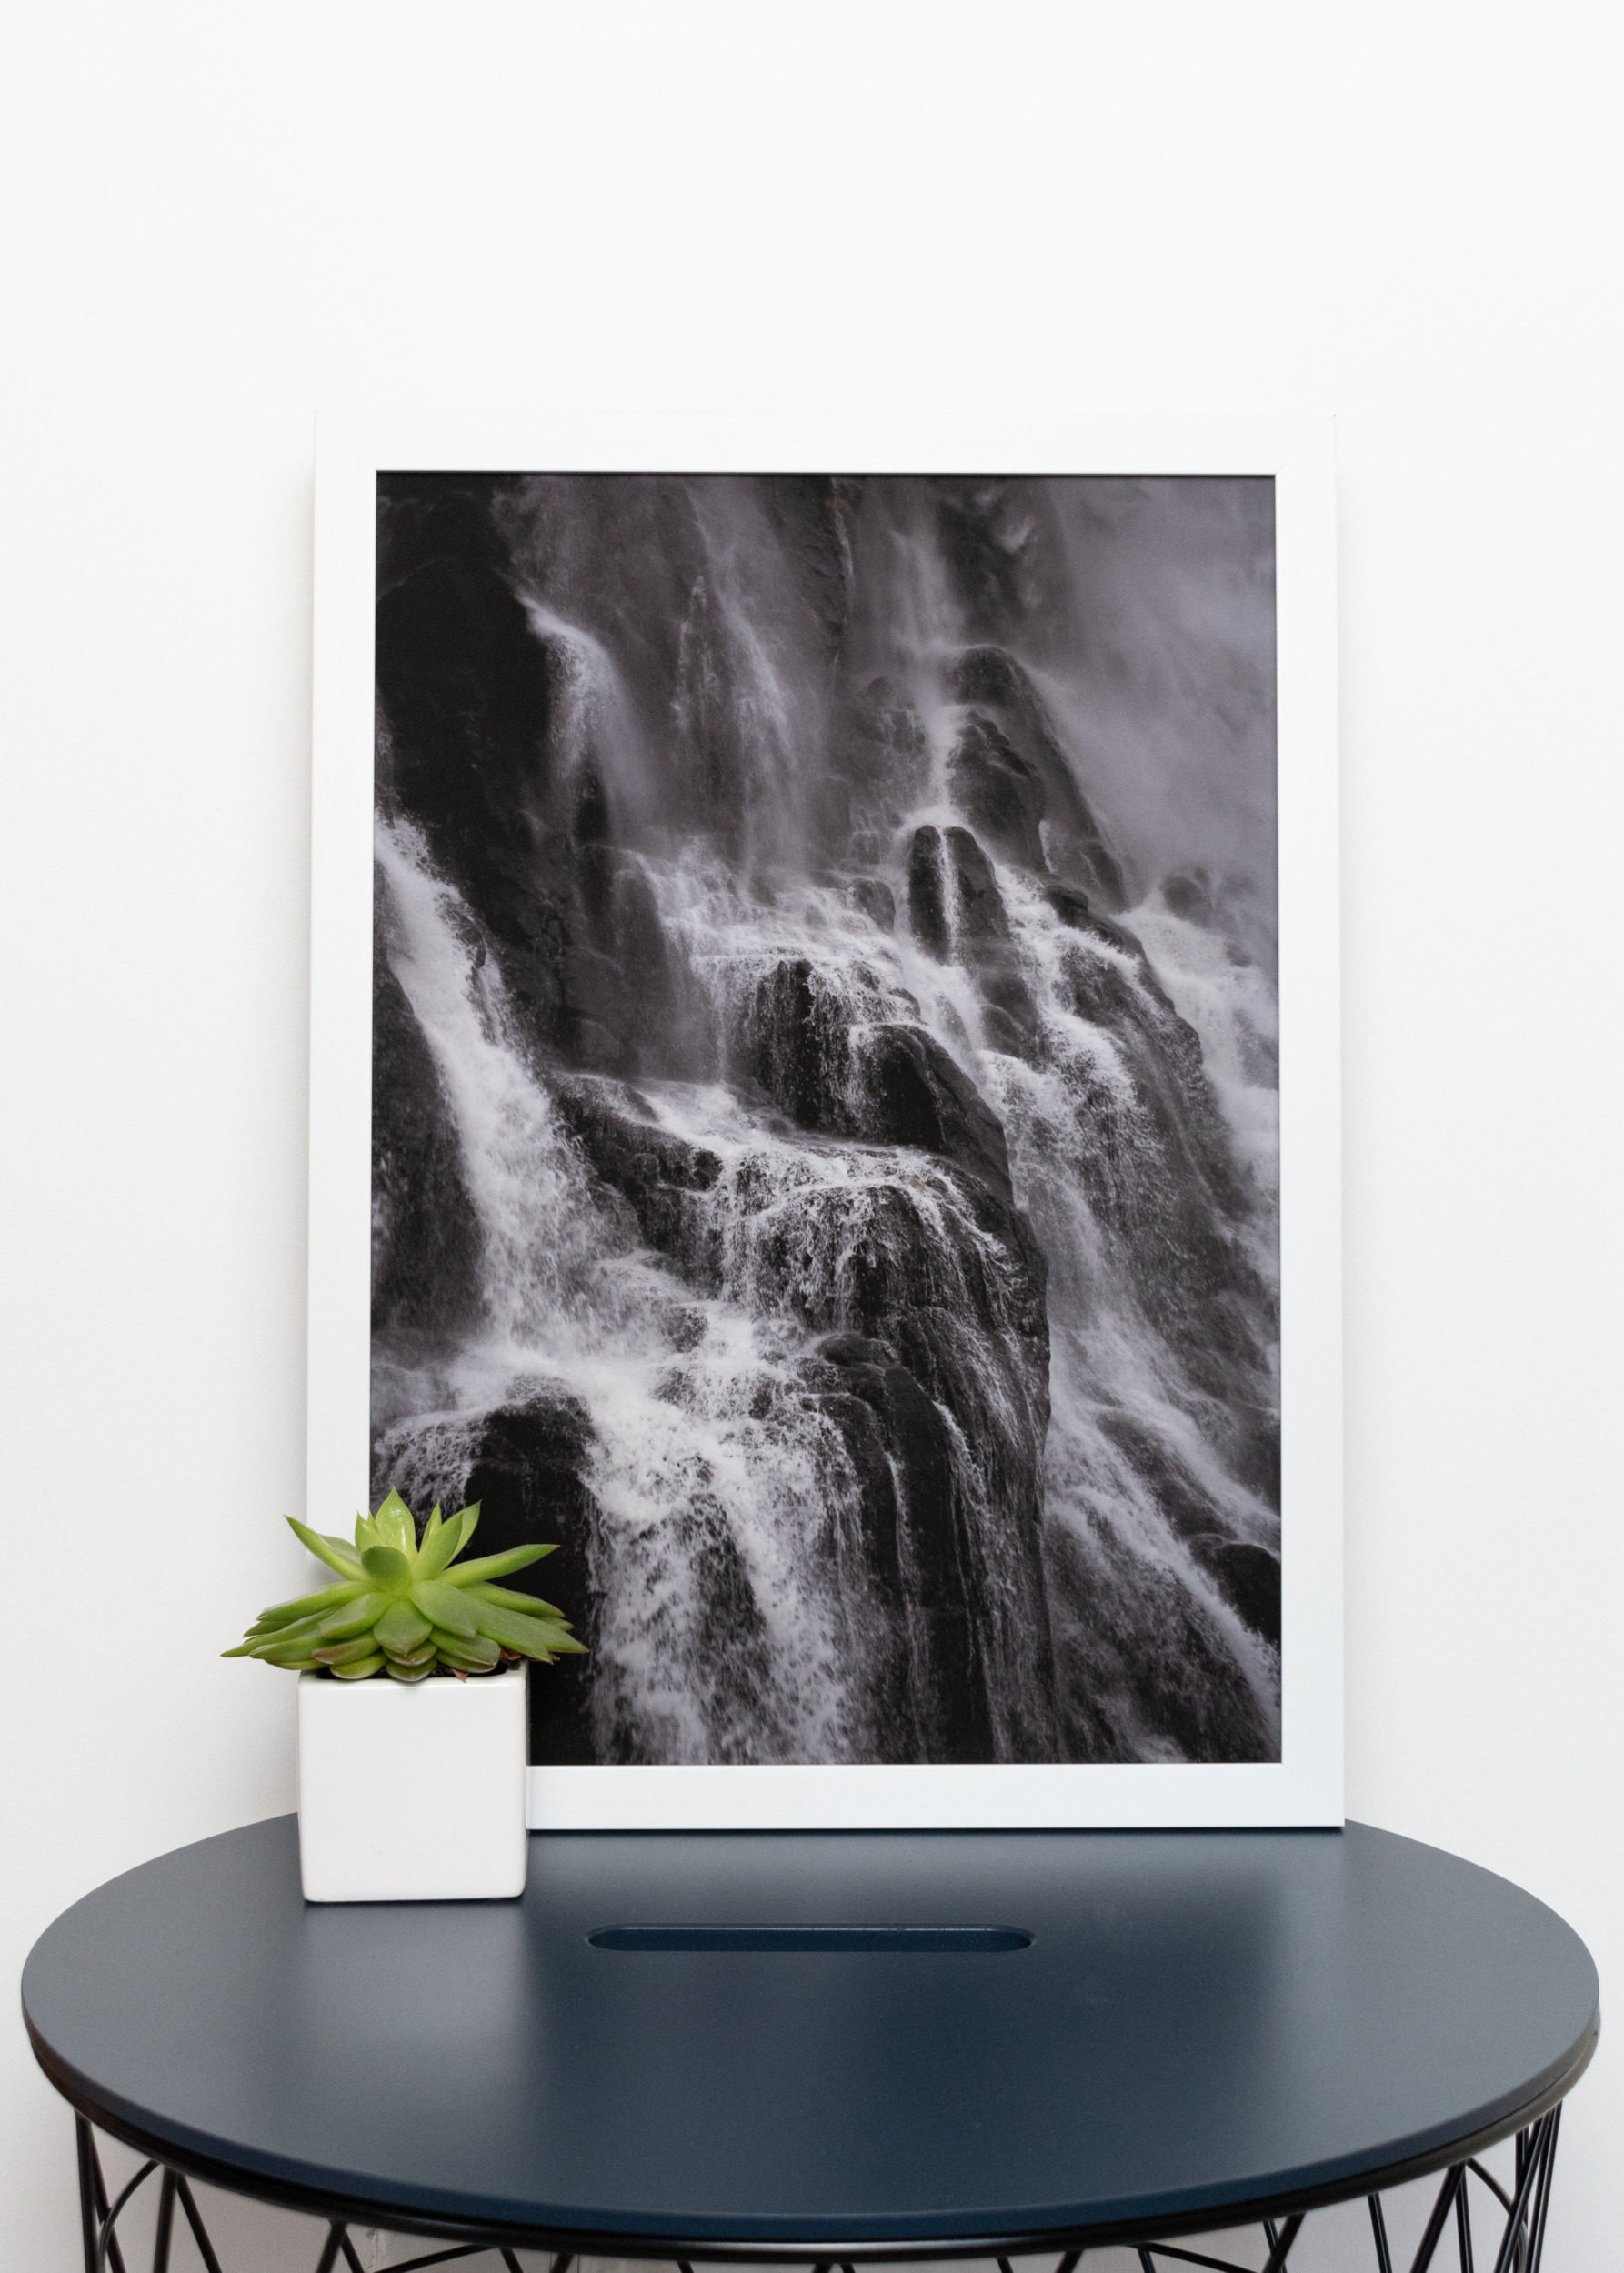 Framed A3 Victoria Broad Photography print of waterfall in Norway, in white frame.